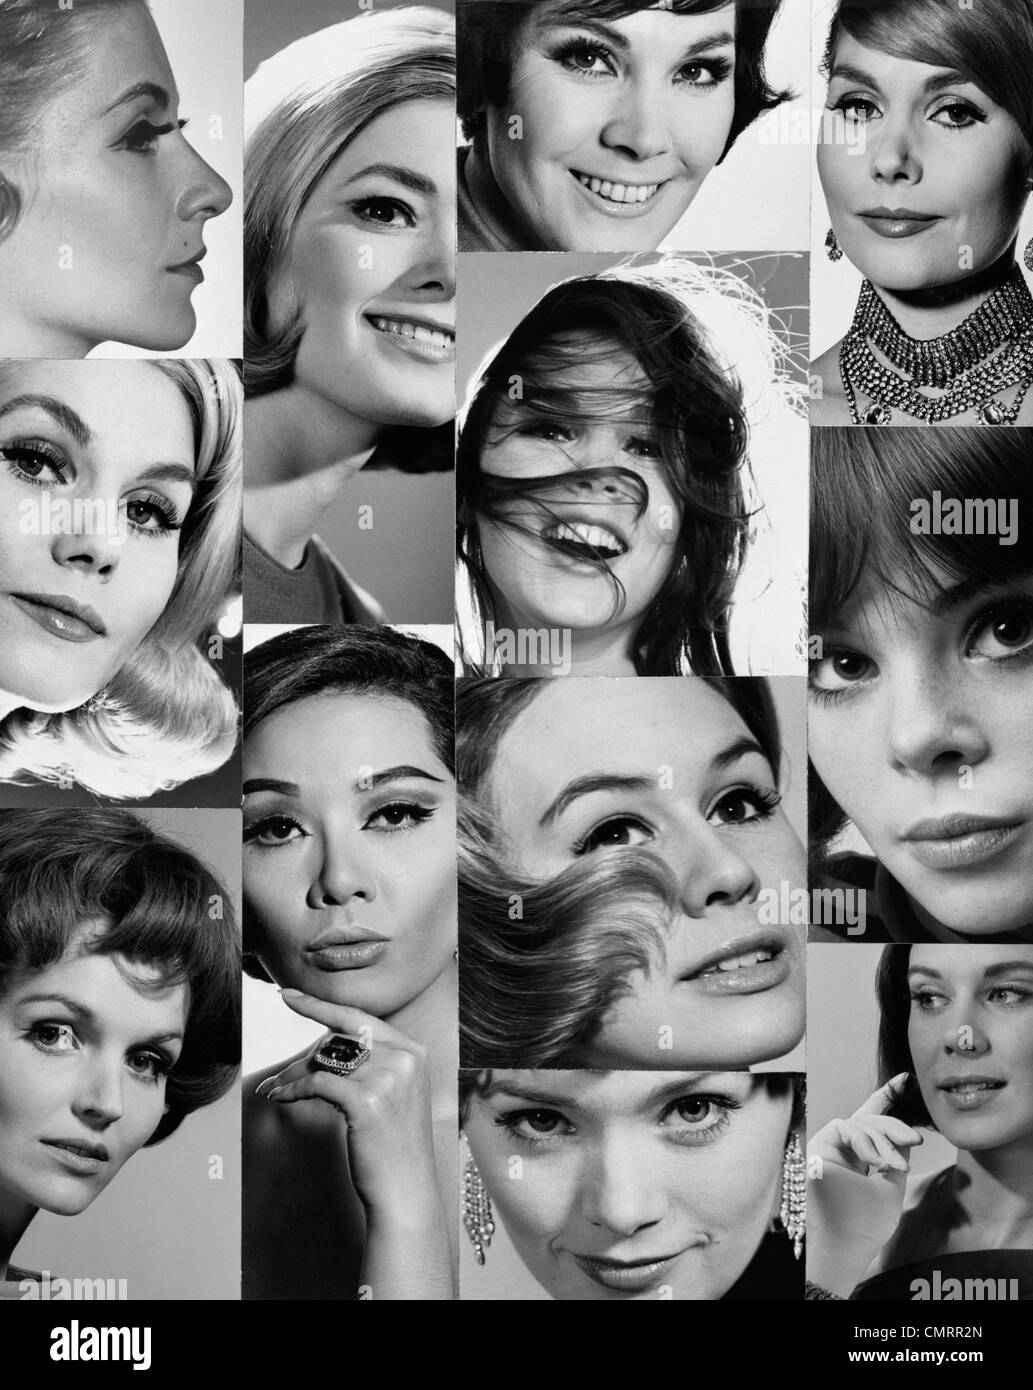 1960s 1970s MONTAGE OF CLOSE-UP PORTRAITS OF WOMEN'S HEADS EYES NOSES MOUTHS HAIR - Stock Image